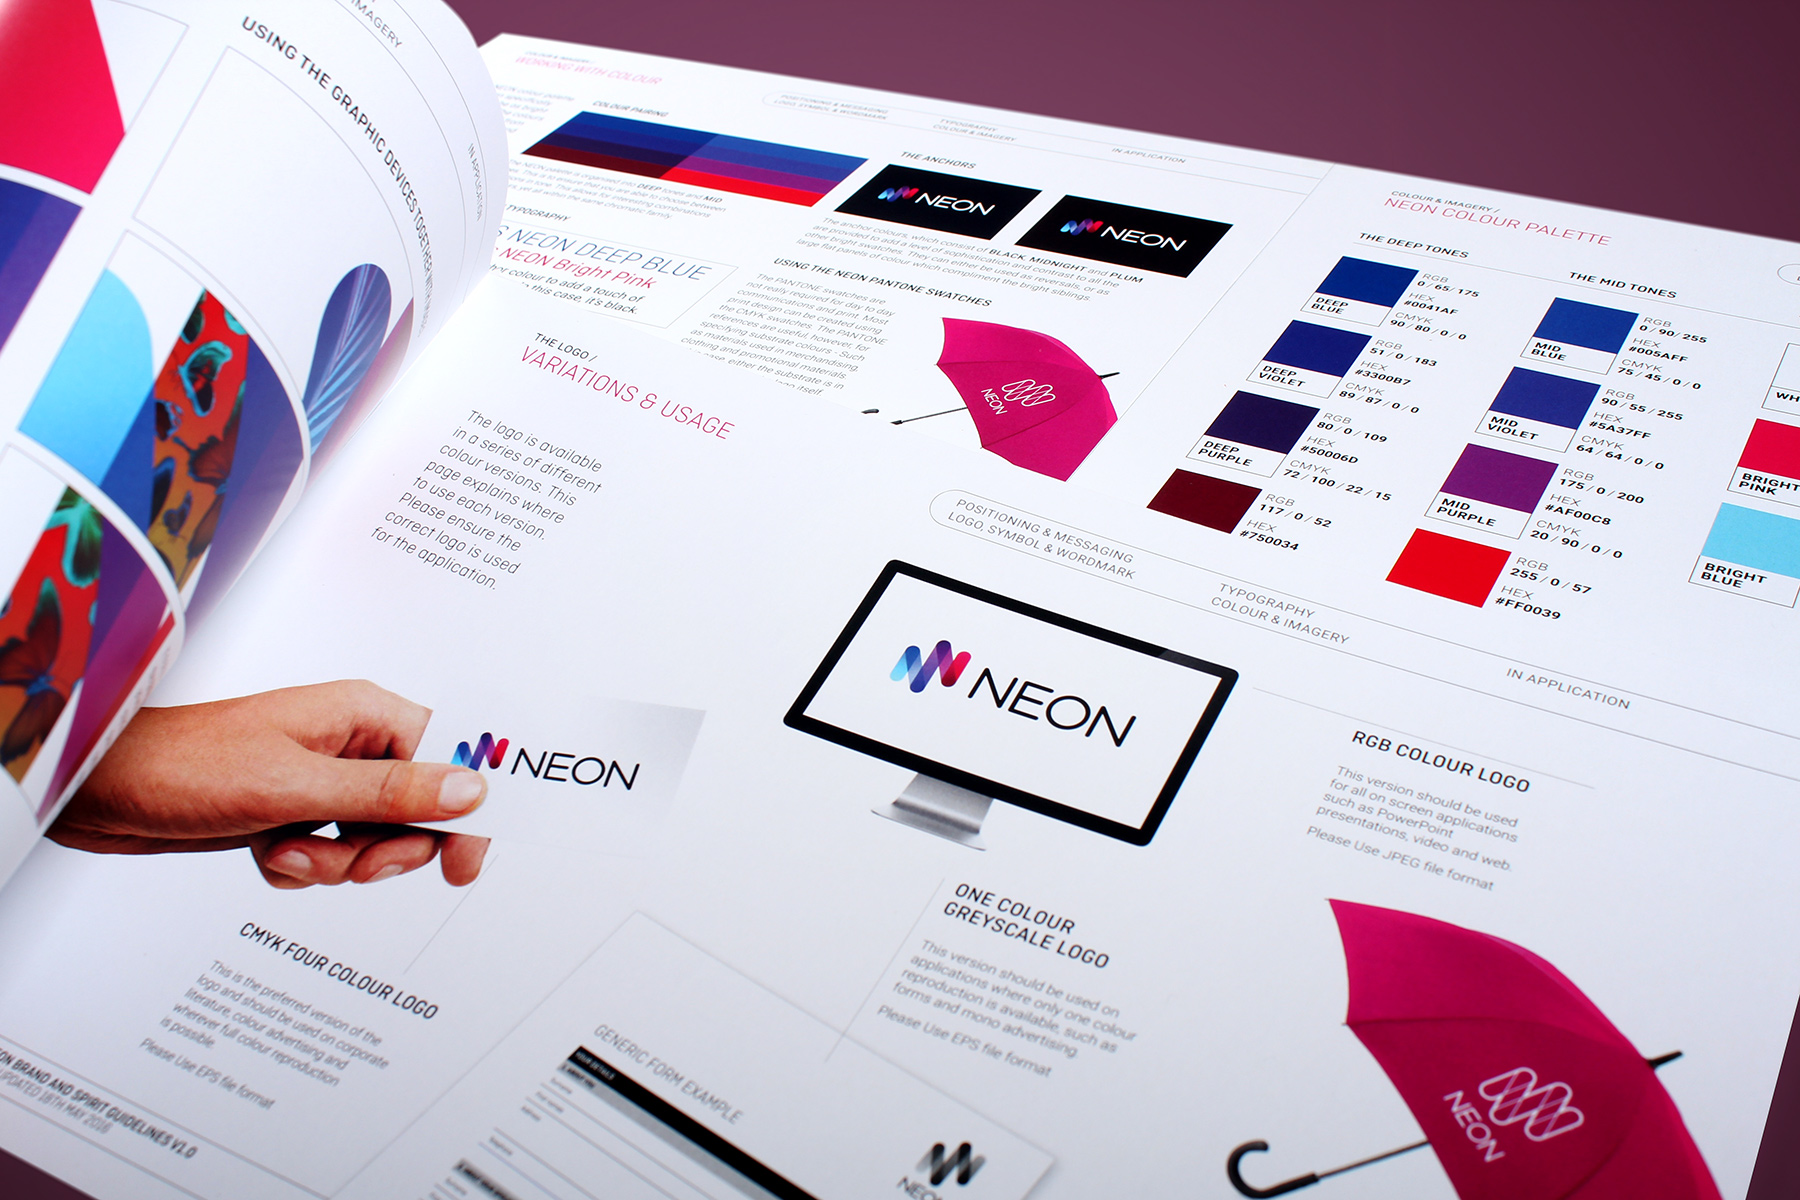 The branding process was supported by a comprehensive brand, spirit, communications and digital guideline kit.